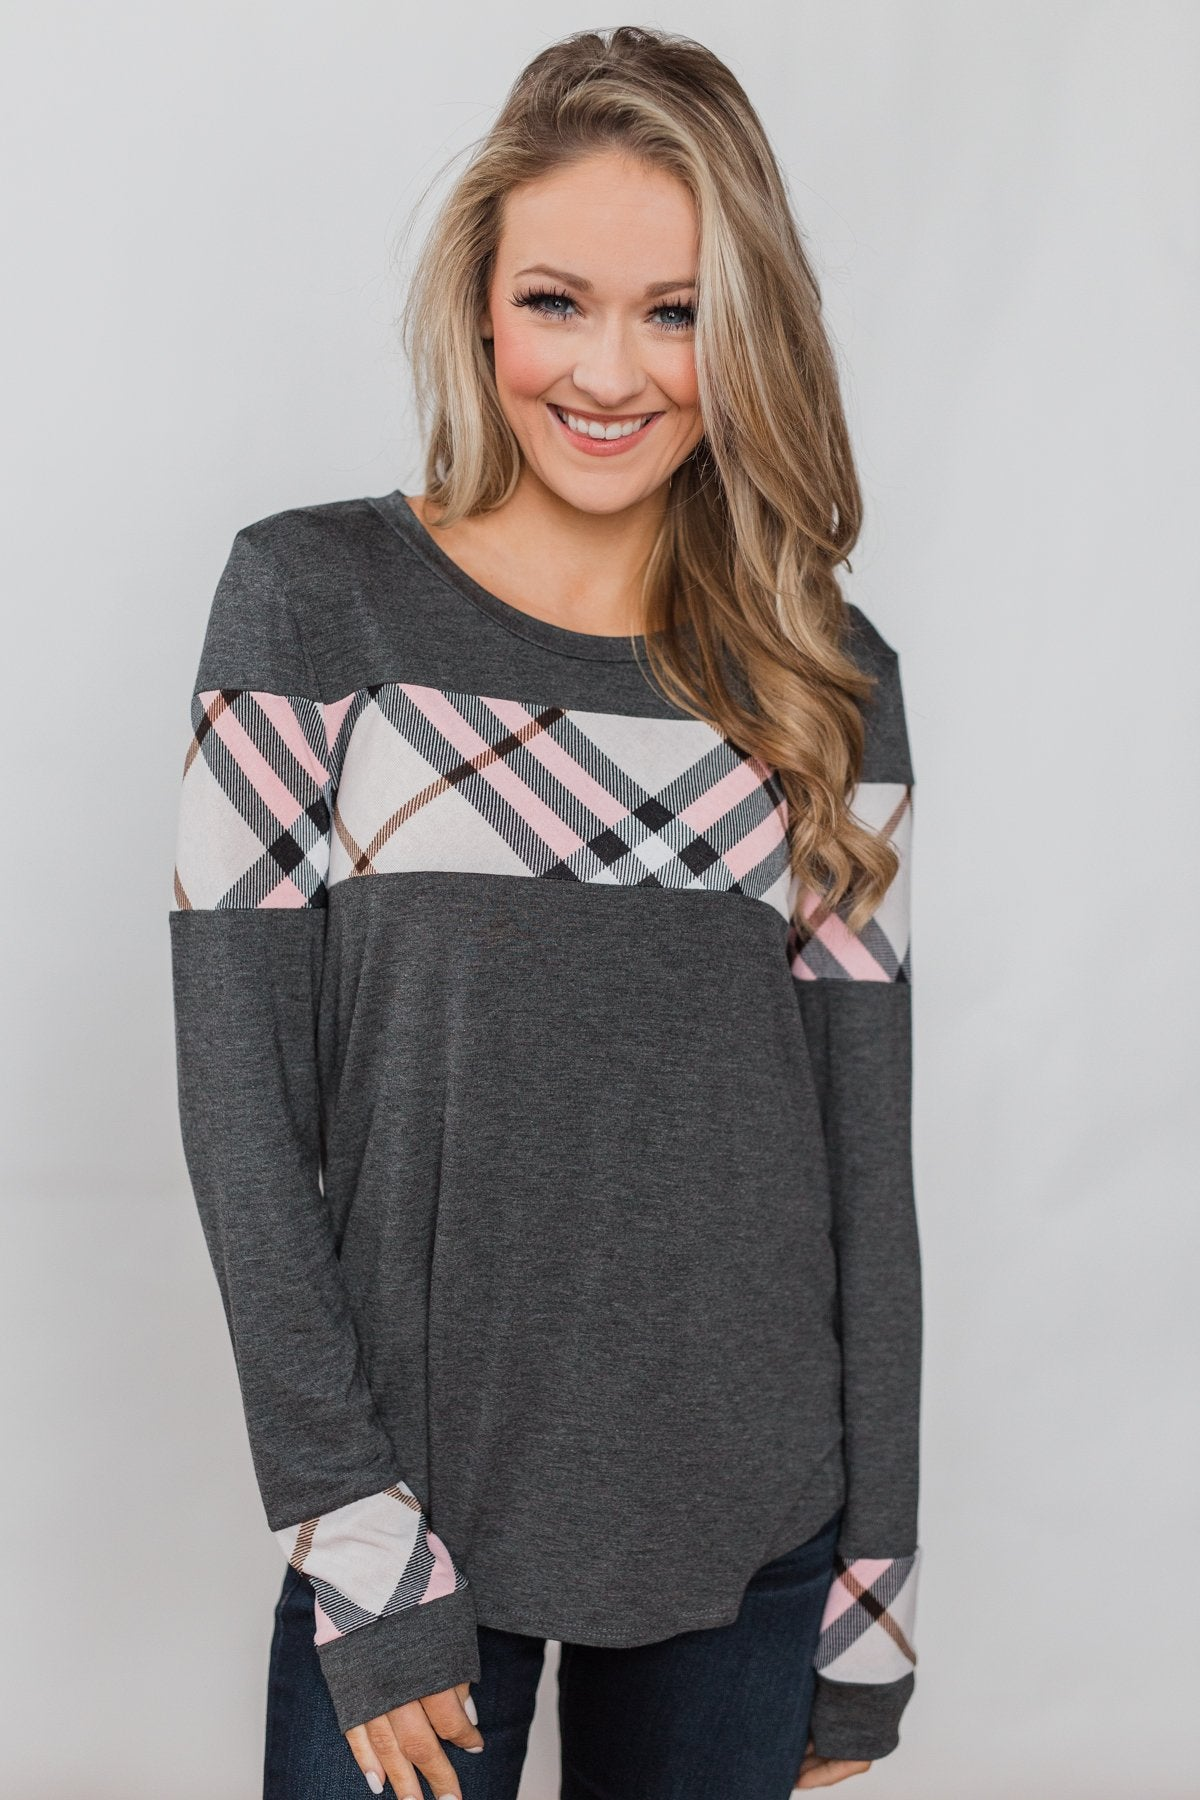 Simple Stripes Long Sleeve Sweater - Slate Blue & Ivory